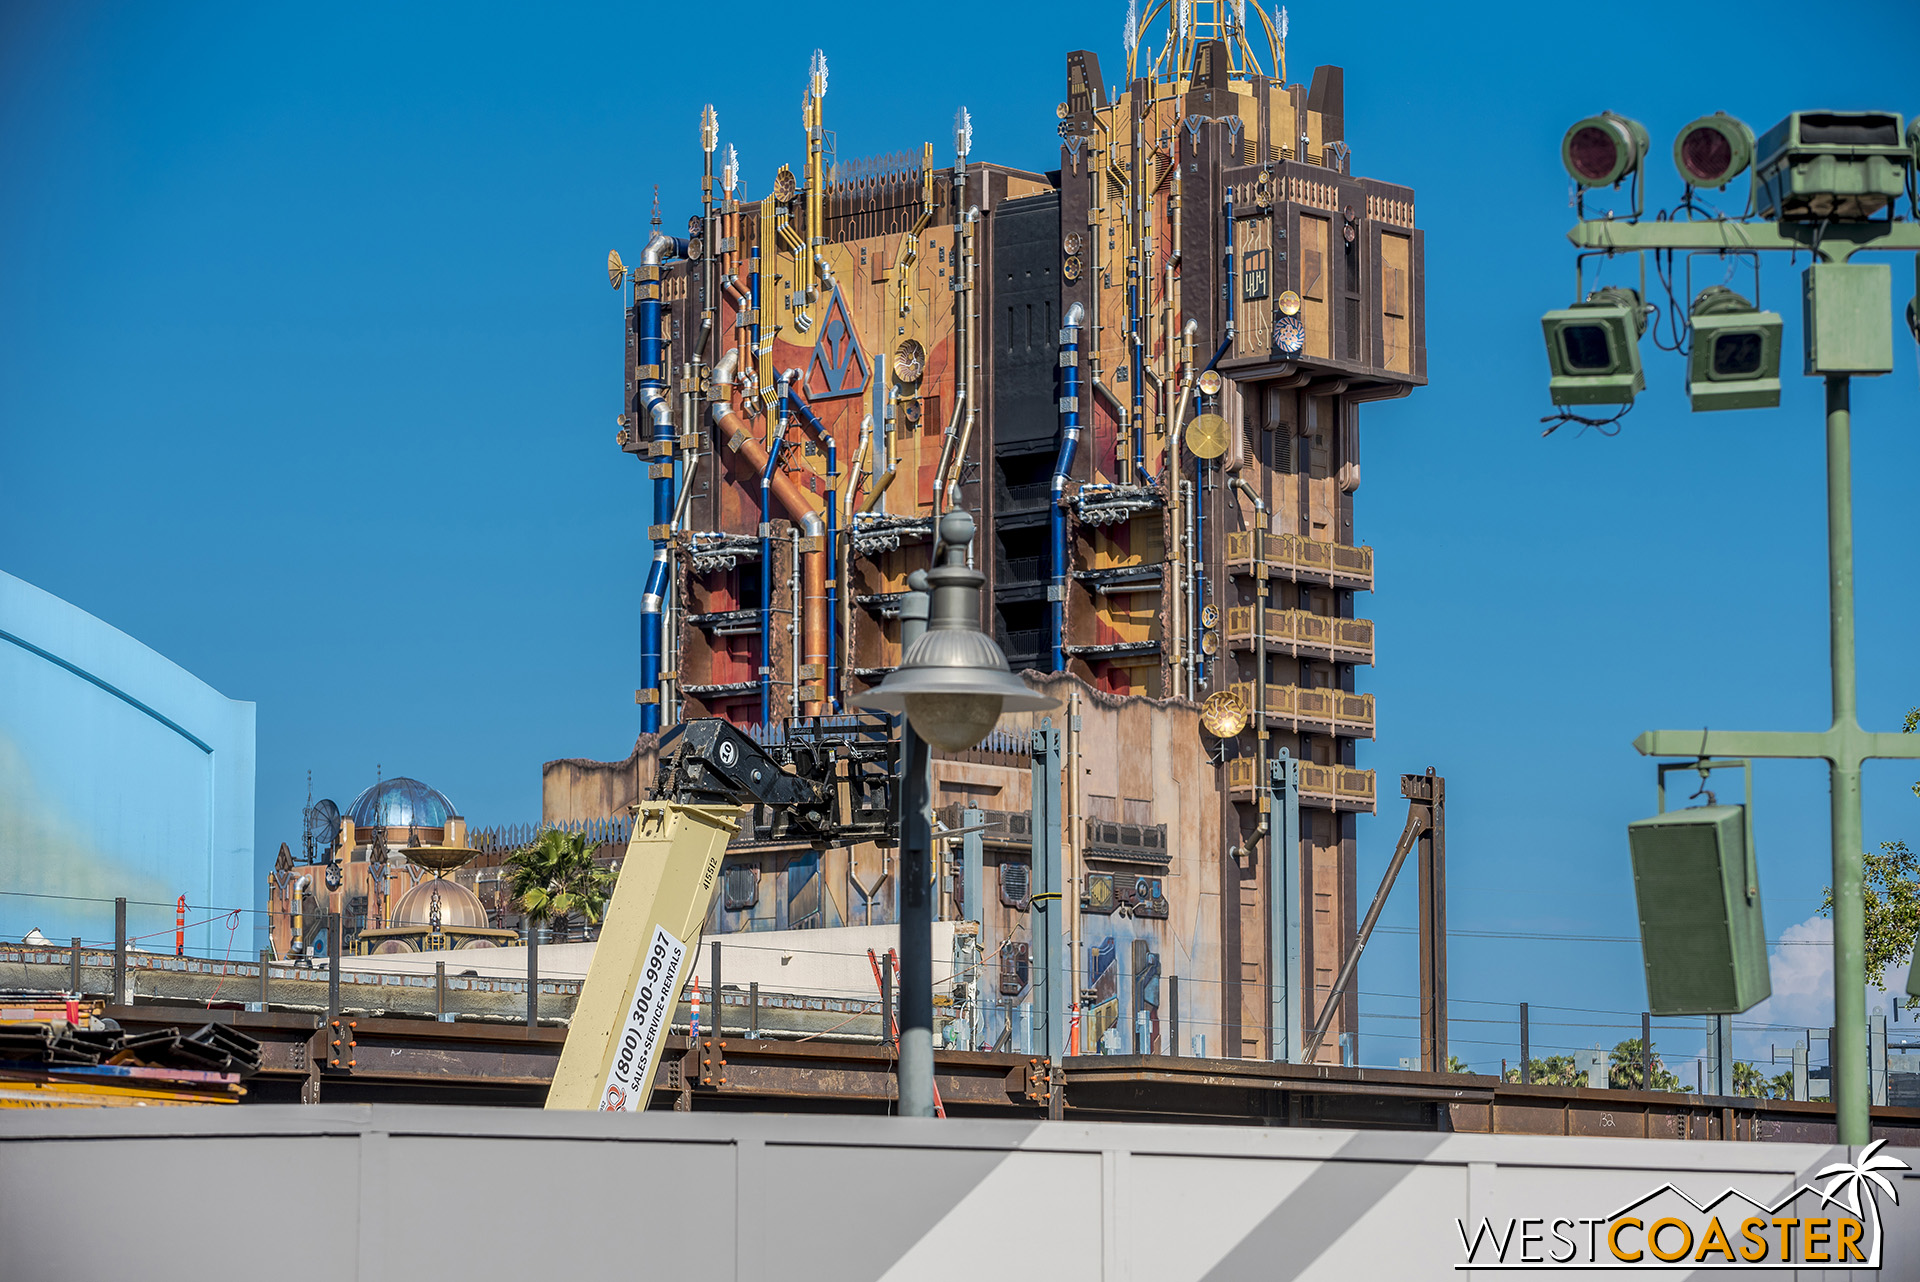 The steel work stretches toward Hollywood Land and turns the corner too.